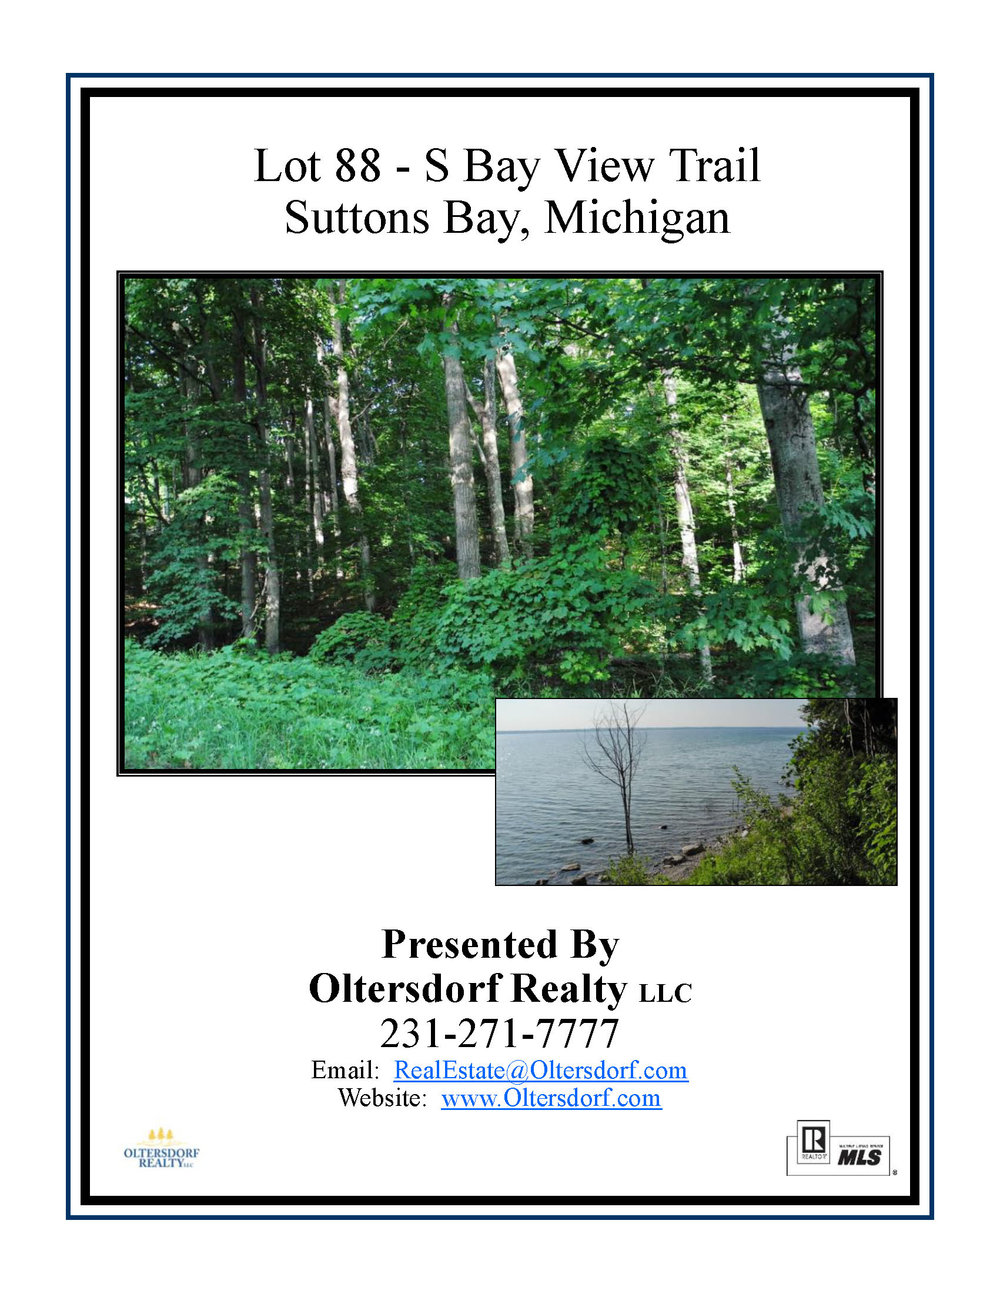 S Bay View Trail Lot 88, Suttons Bay - For Sale by Oltersdorf Realty LLC - Marketing Packet (1).jpg